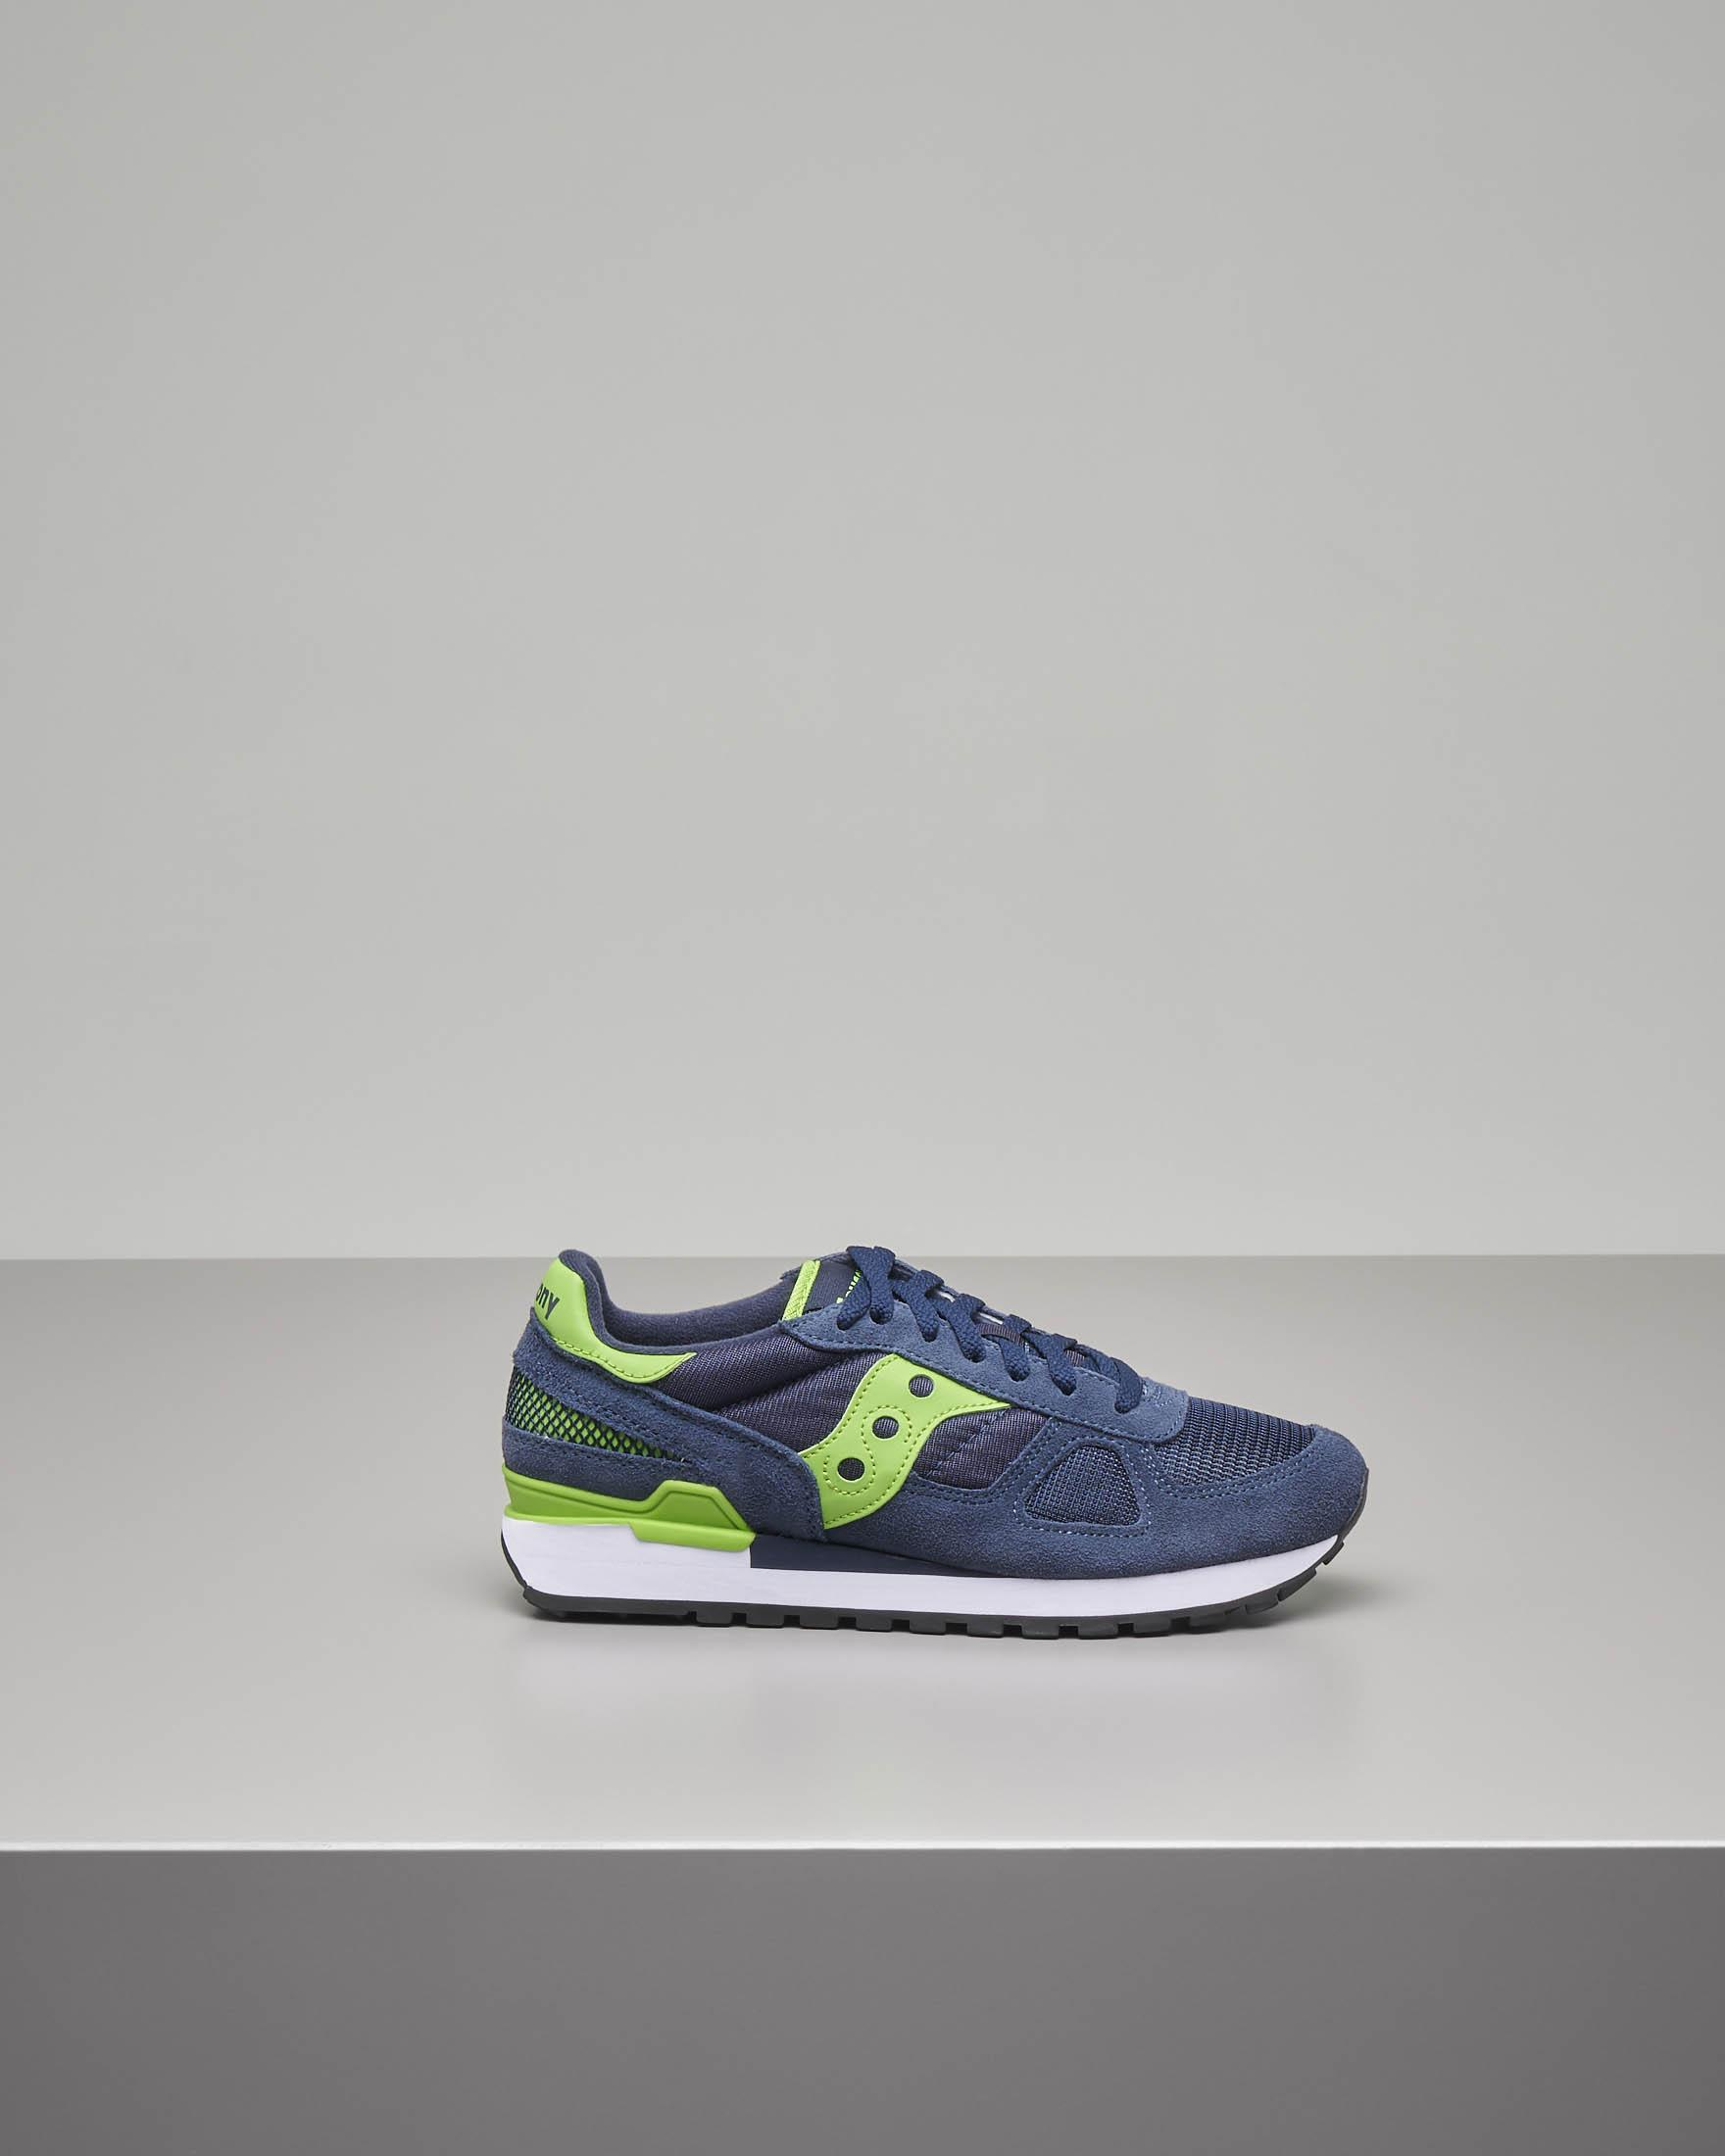 Sneakers Shadow O' blu e verde